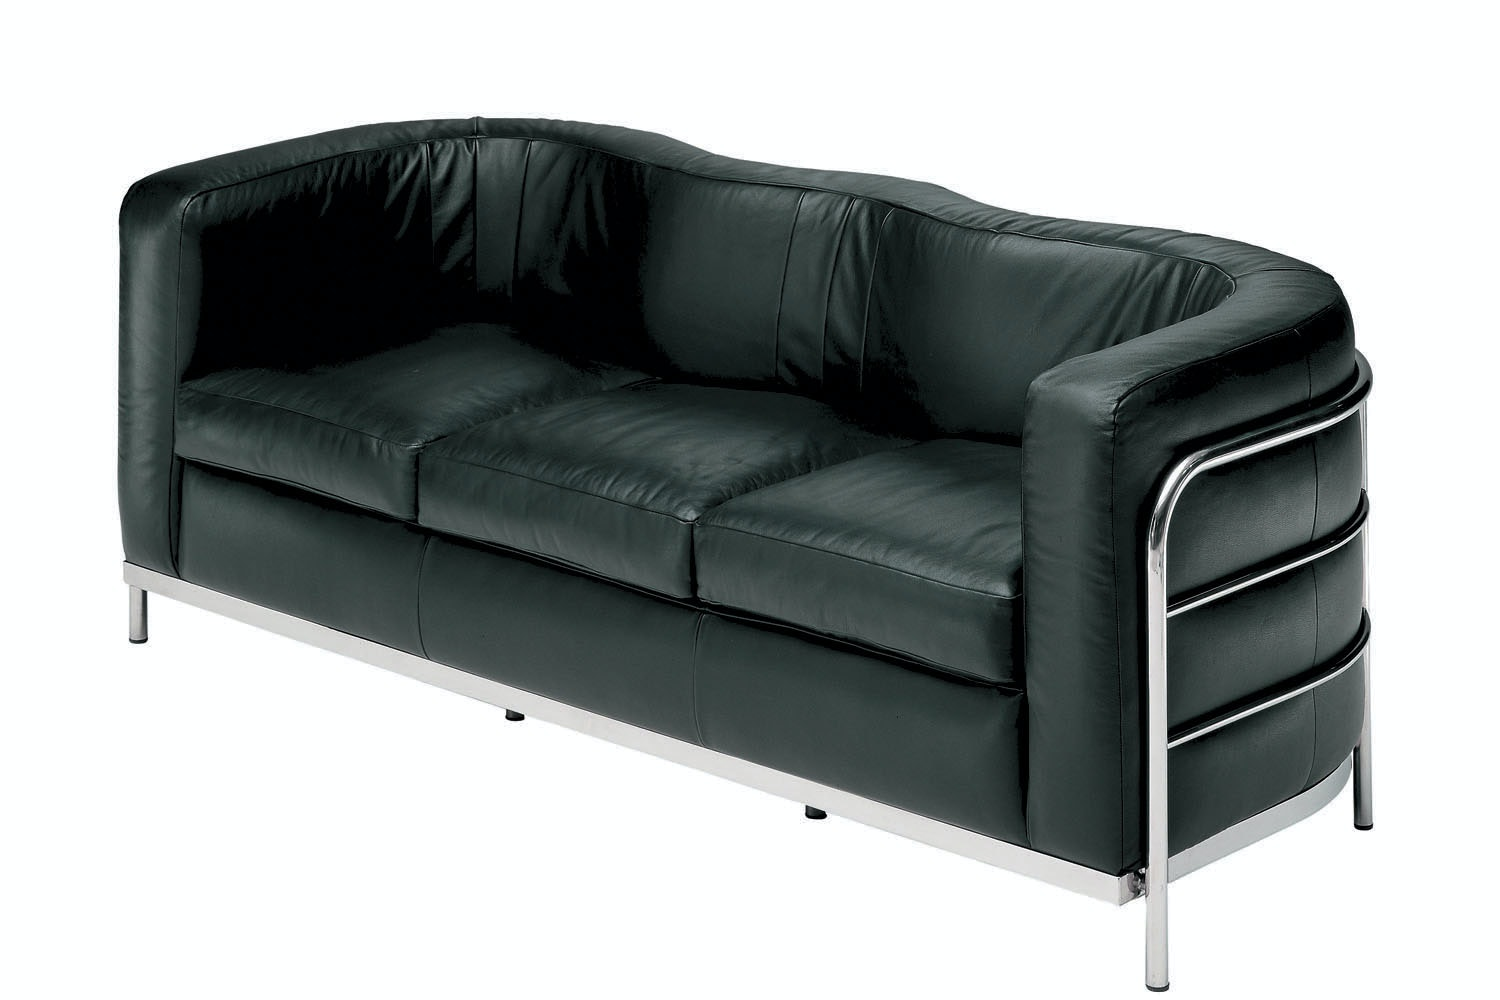 Onda Sofa by De Pas, D'Urbino, Lomazzi for Zanotta